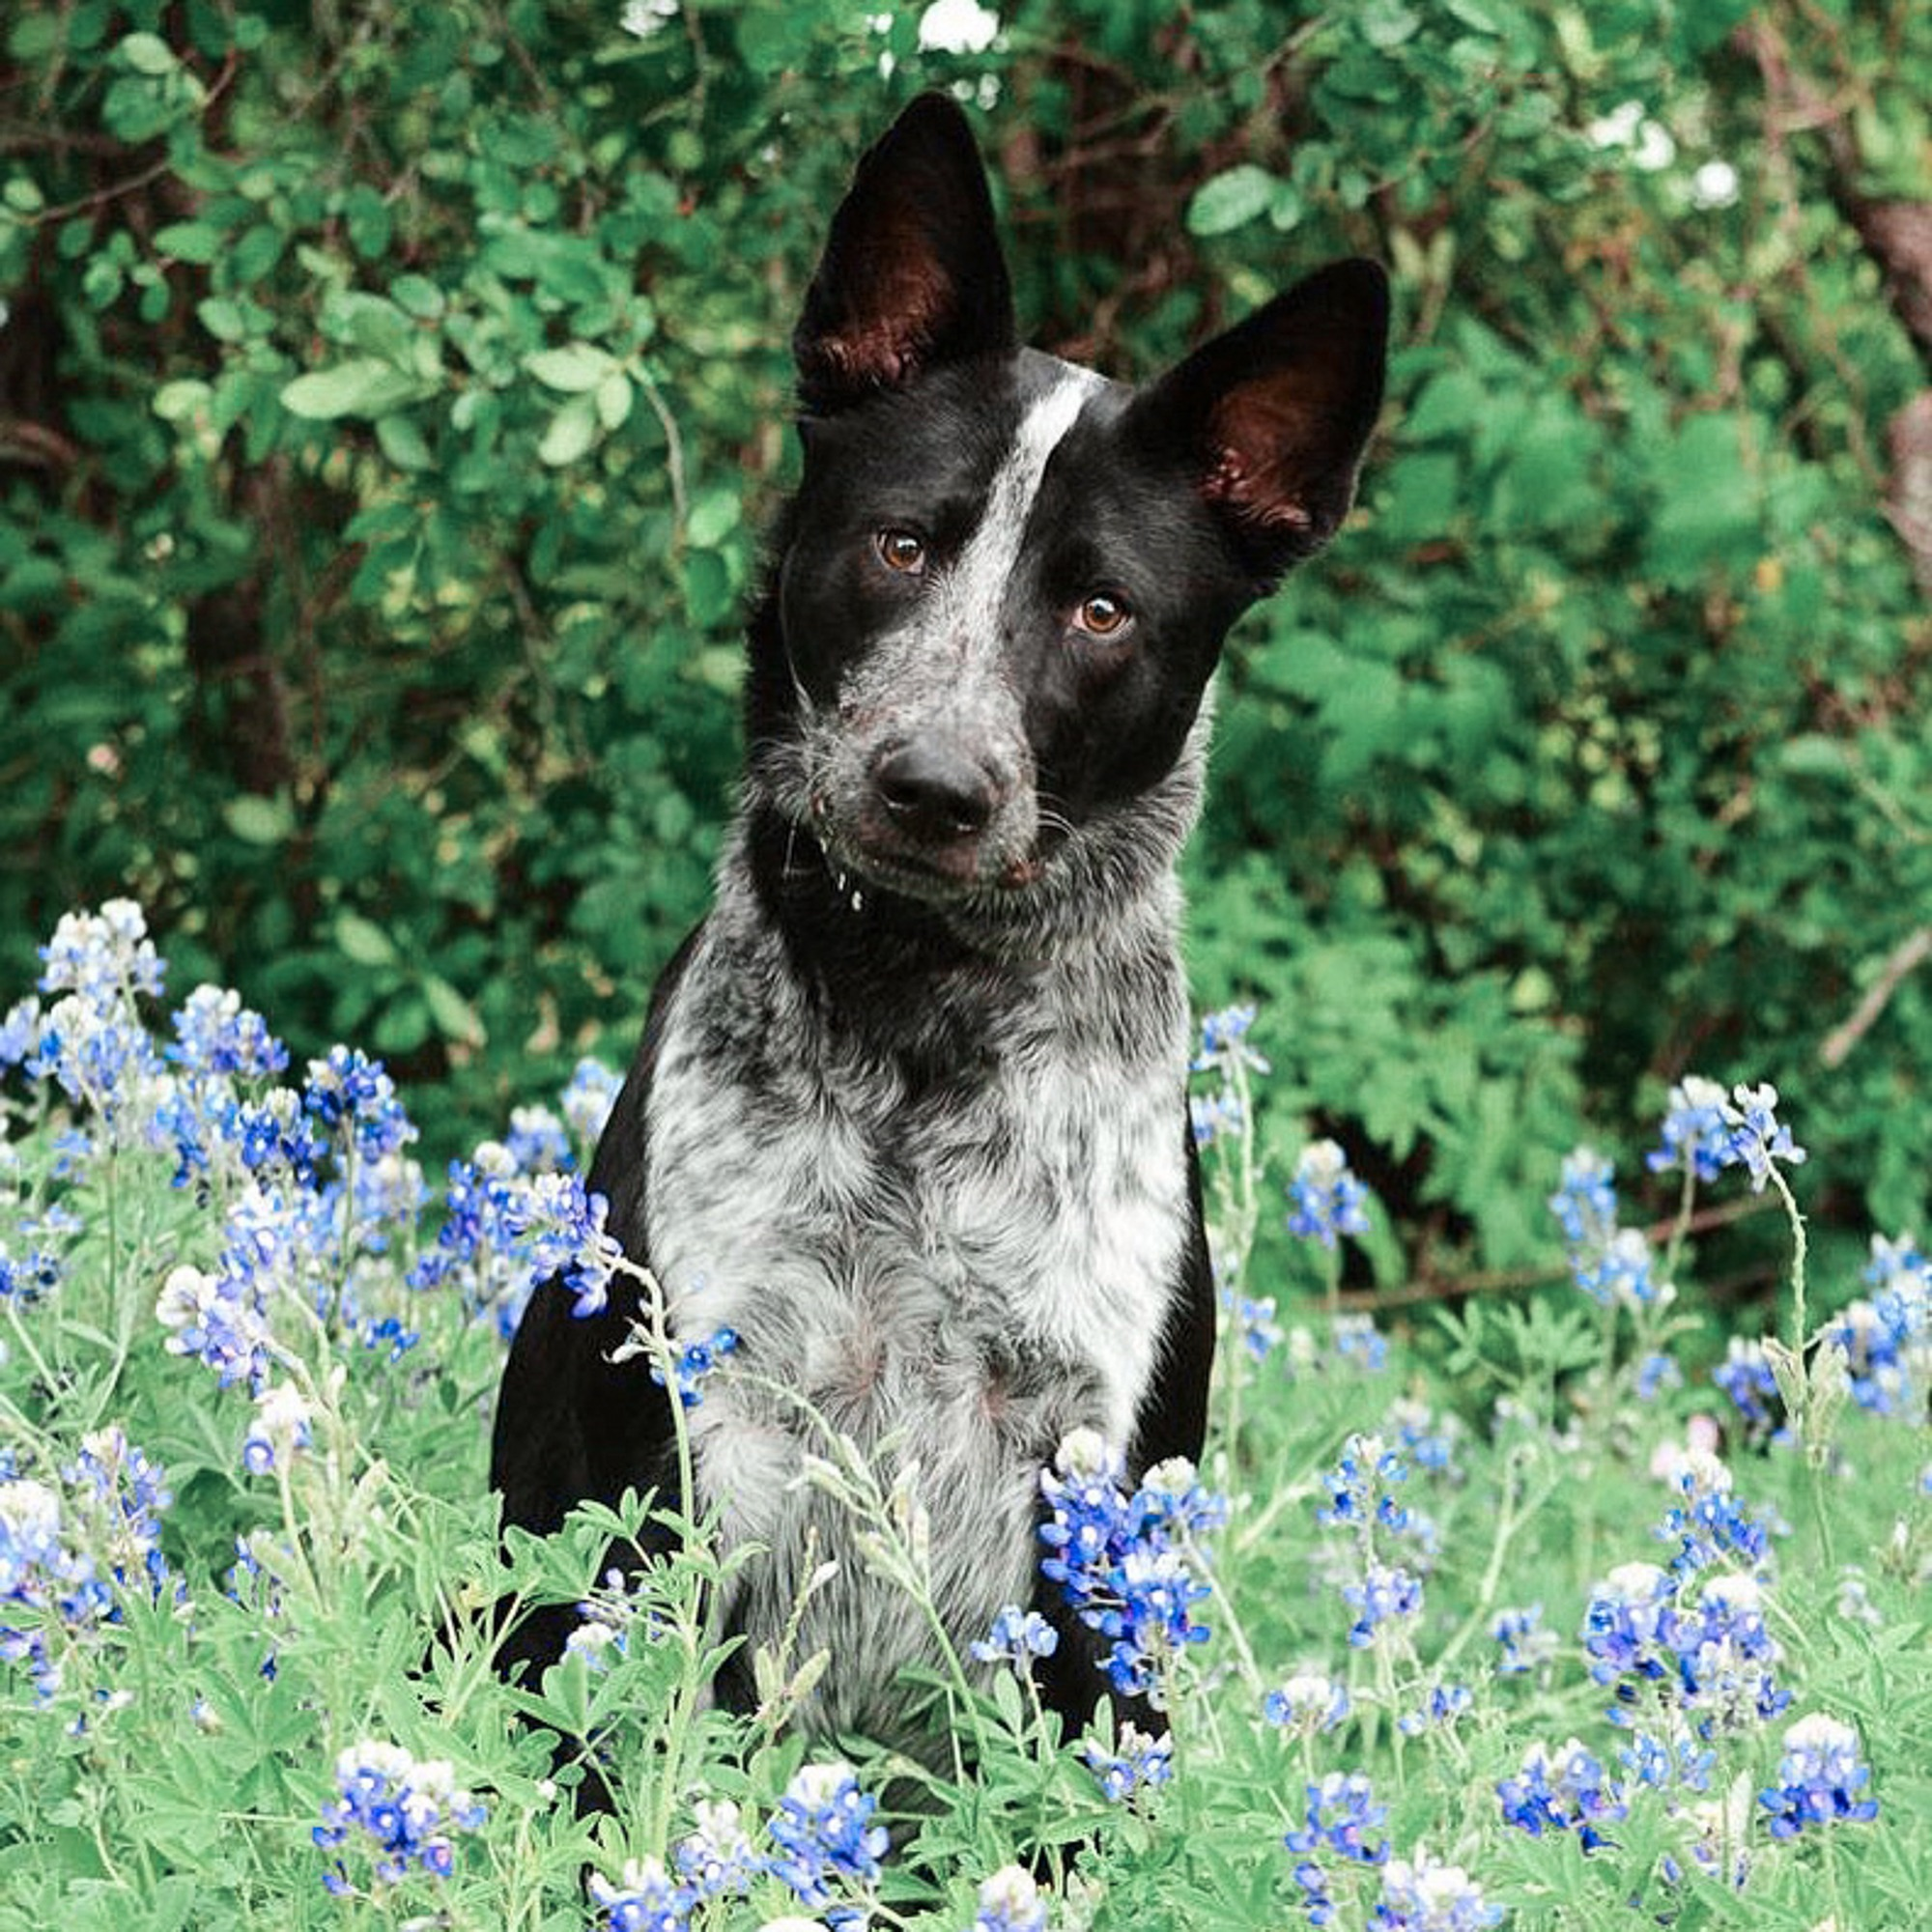 blue heeler dog portrait in the bluebonnets